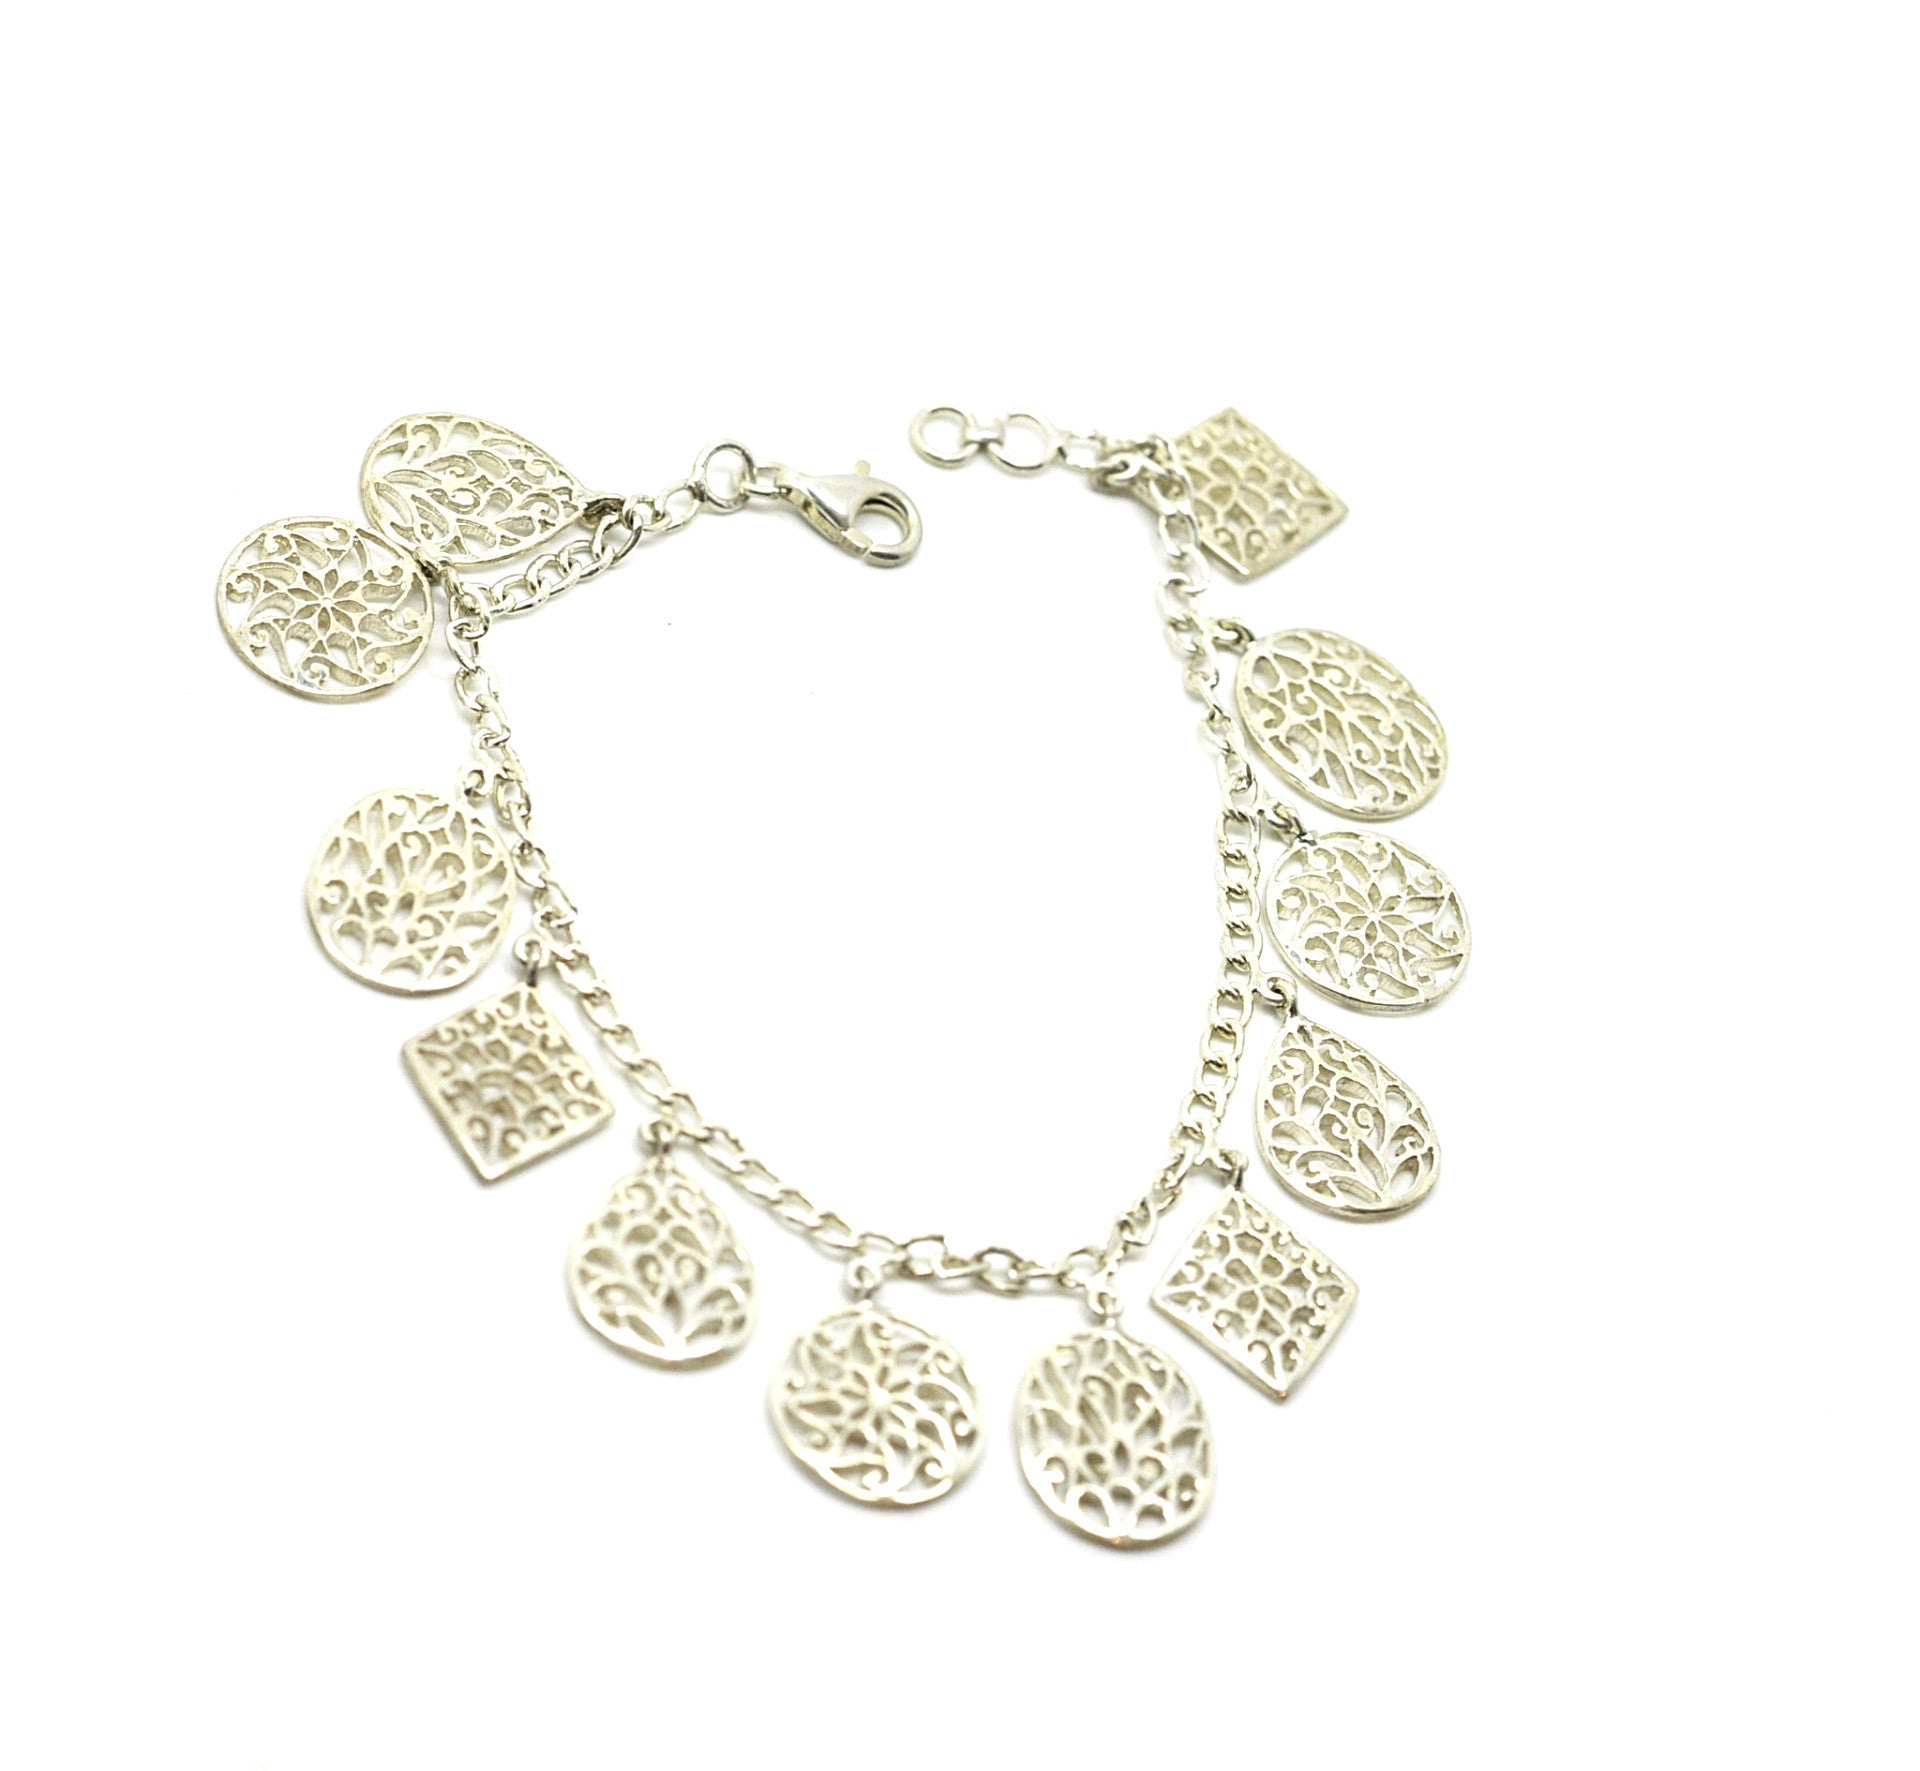 ON SALE Filigree Charm Bracelet (10 inches length)